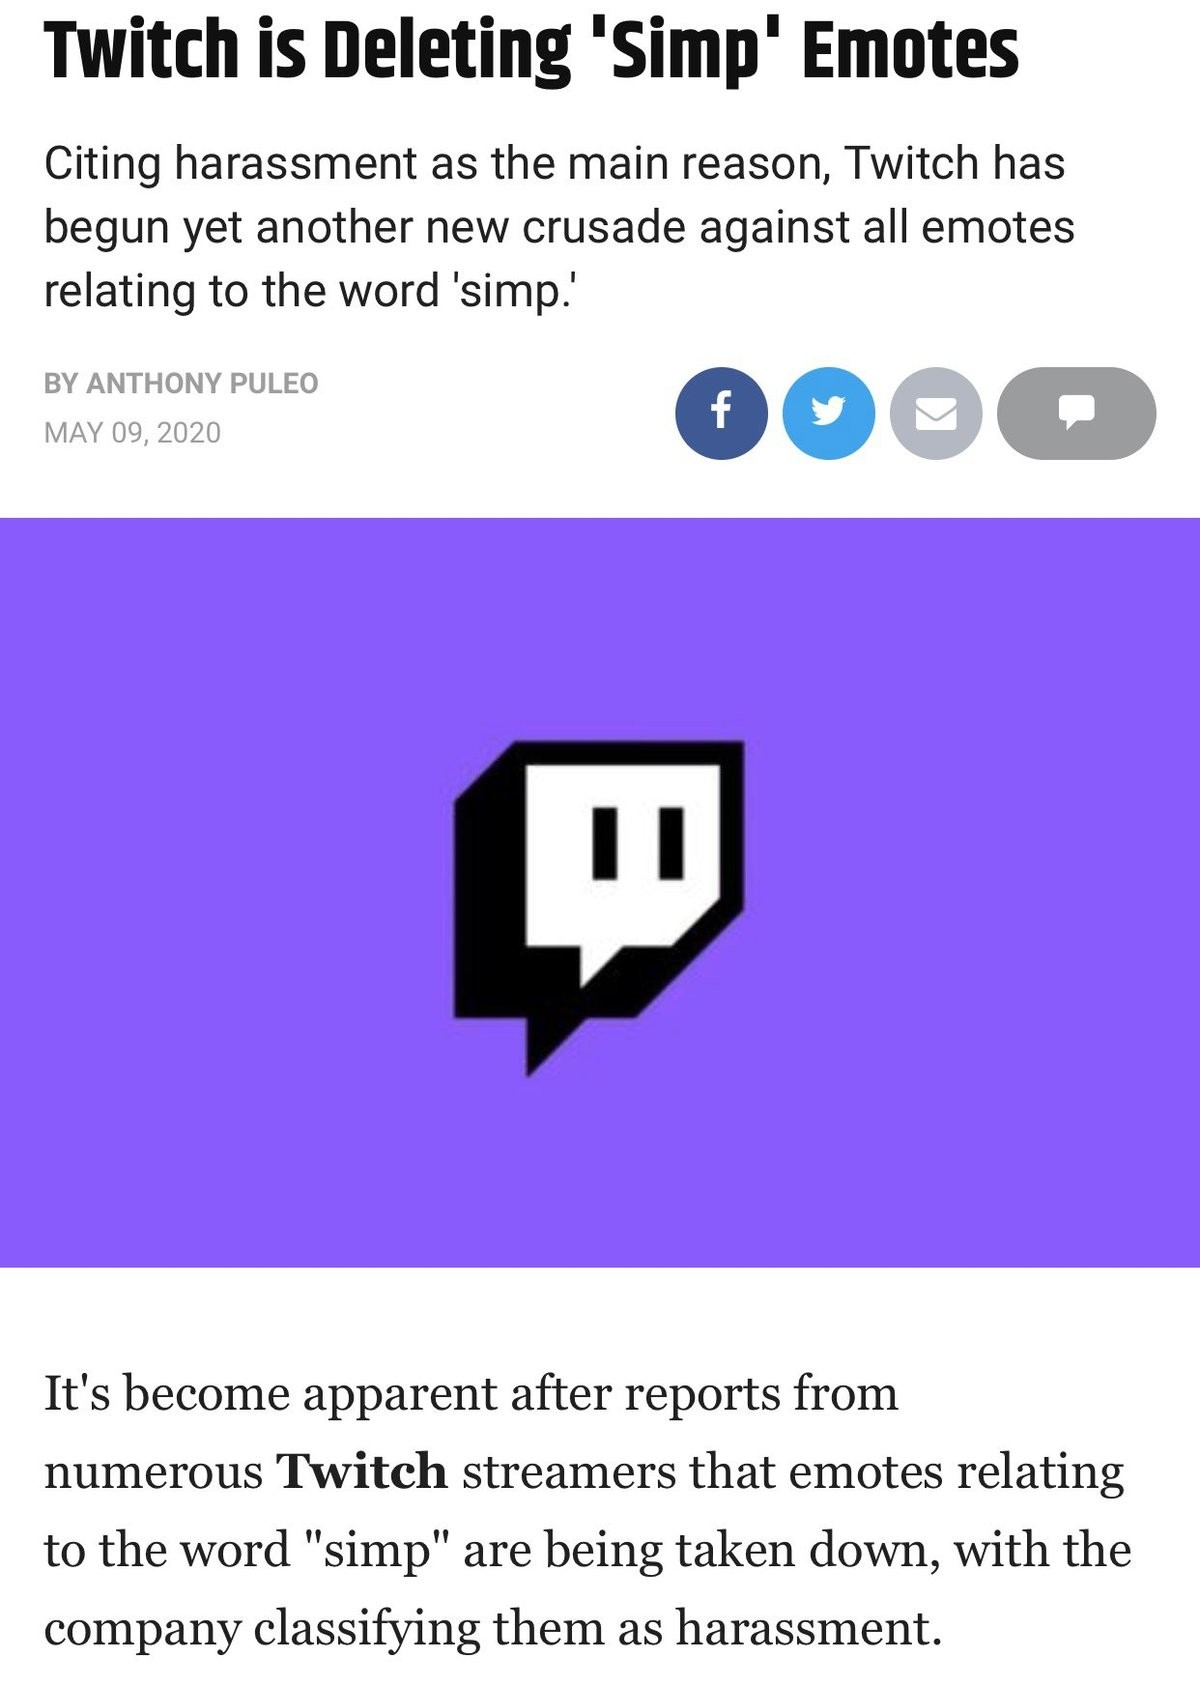 twitch fears simps. .. What are simp emotes?